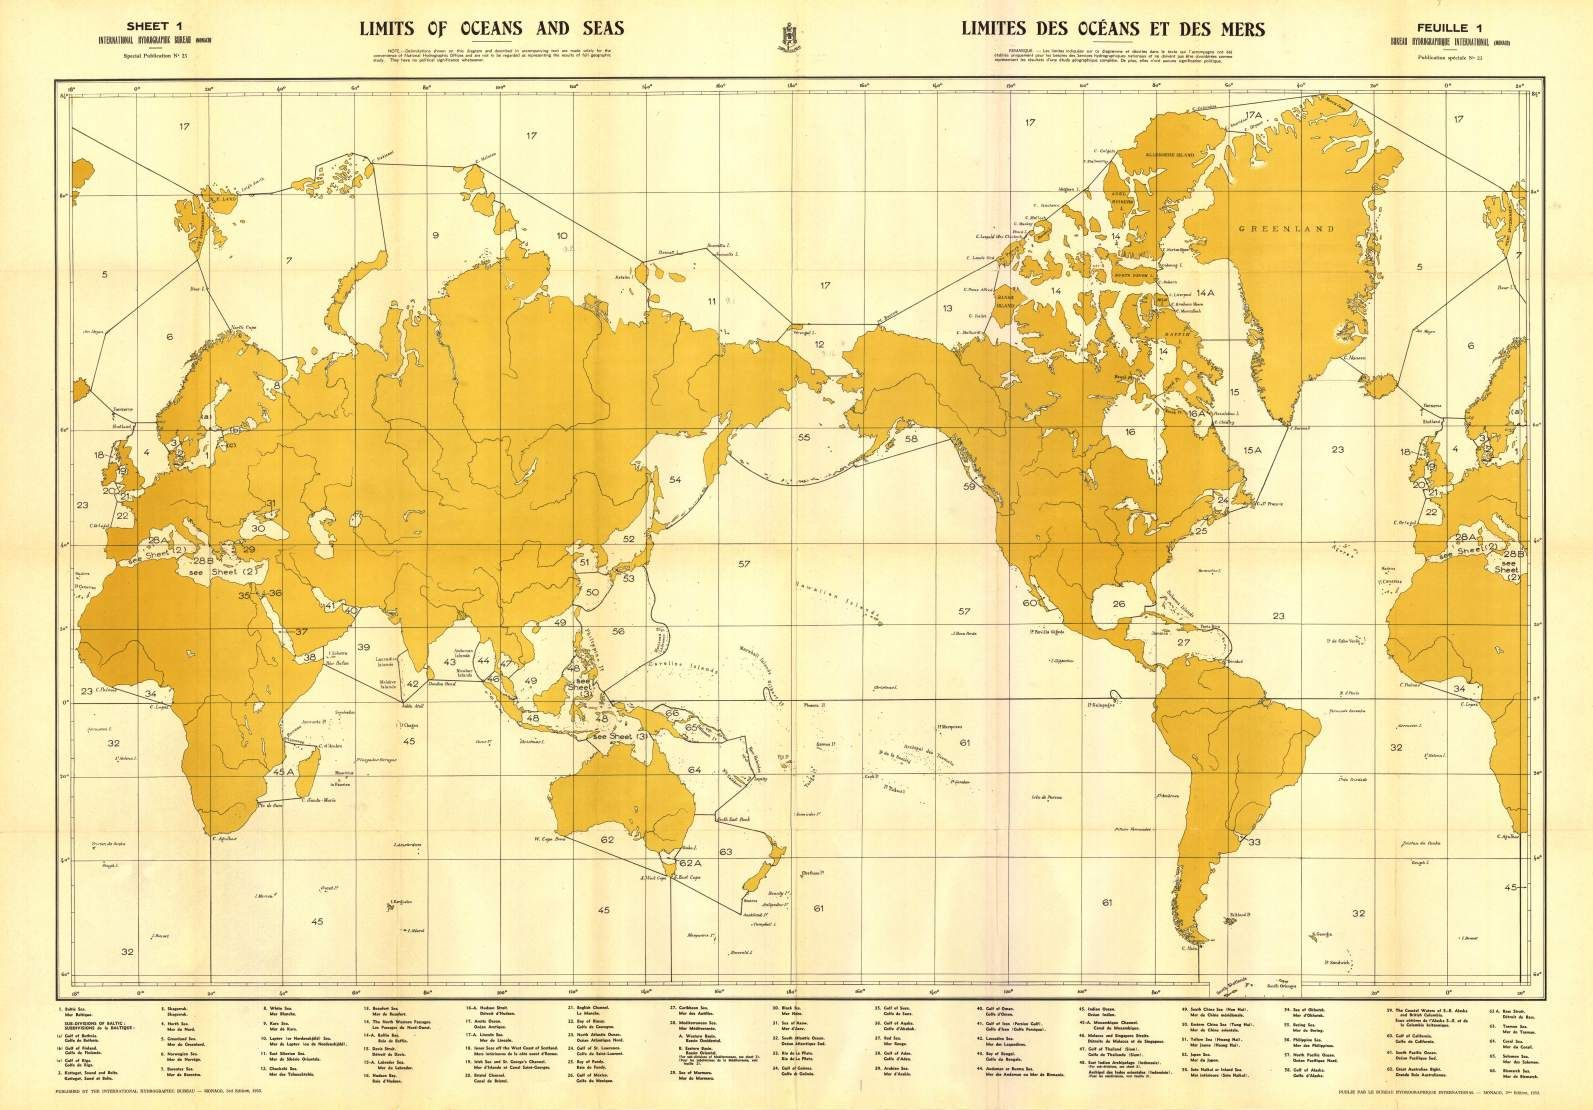 World map oceans and seas figure 217 worlds oceans worid world map oceans and seas figure 217 worlds oceans worid pinterest ocean sciox Choice Image